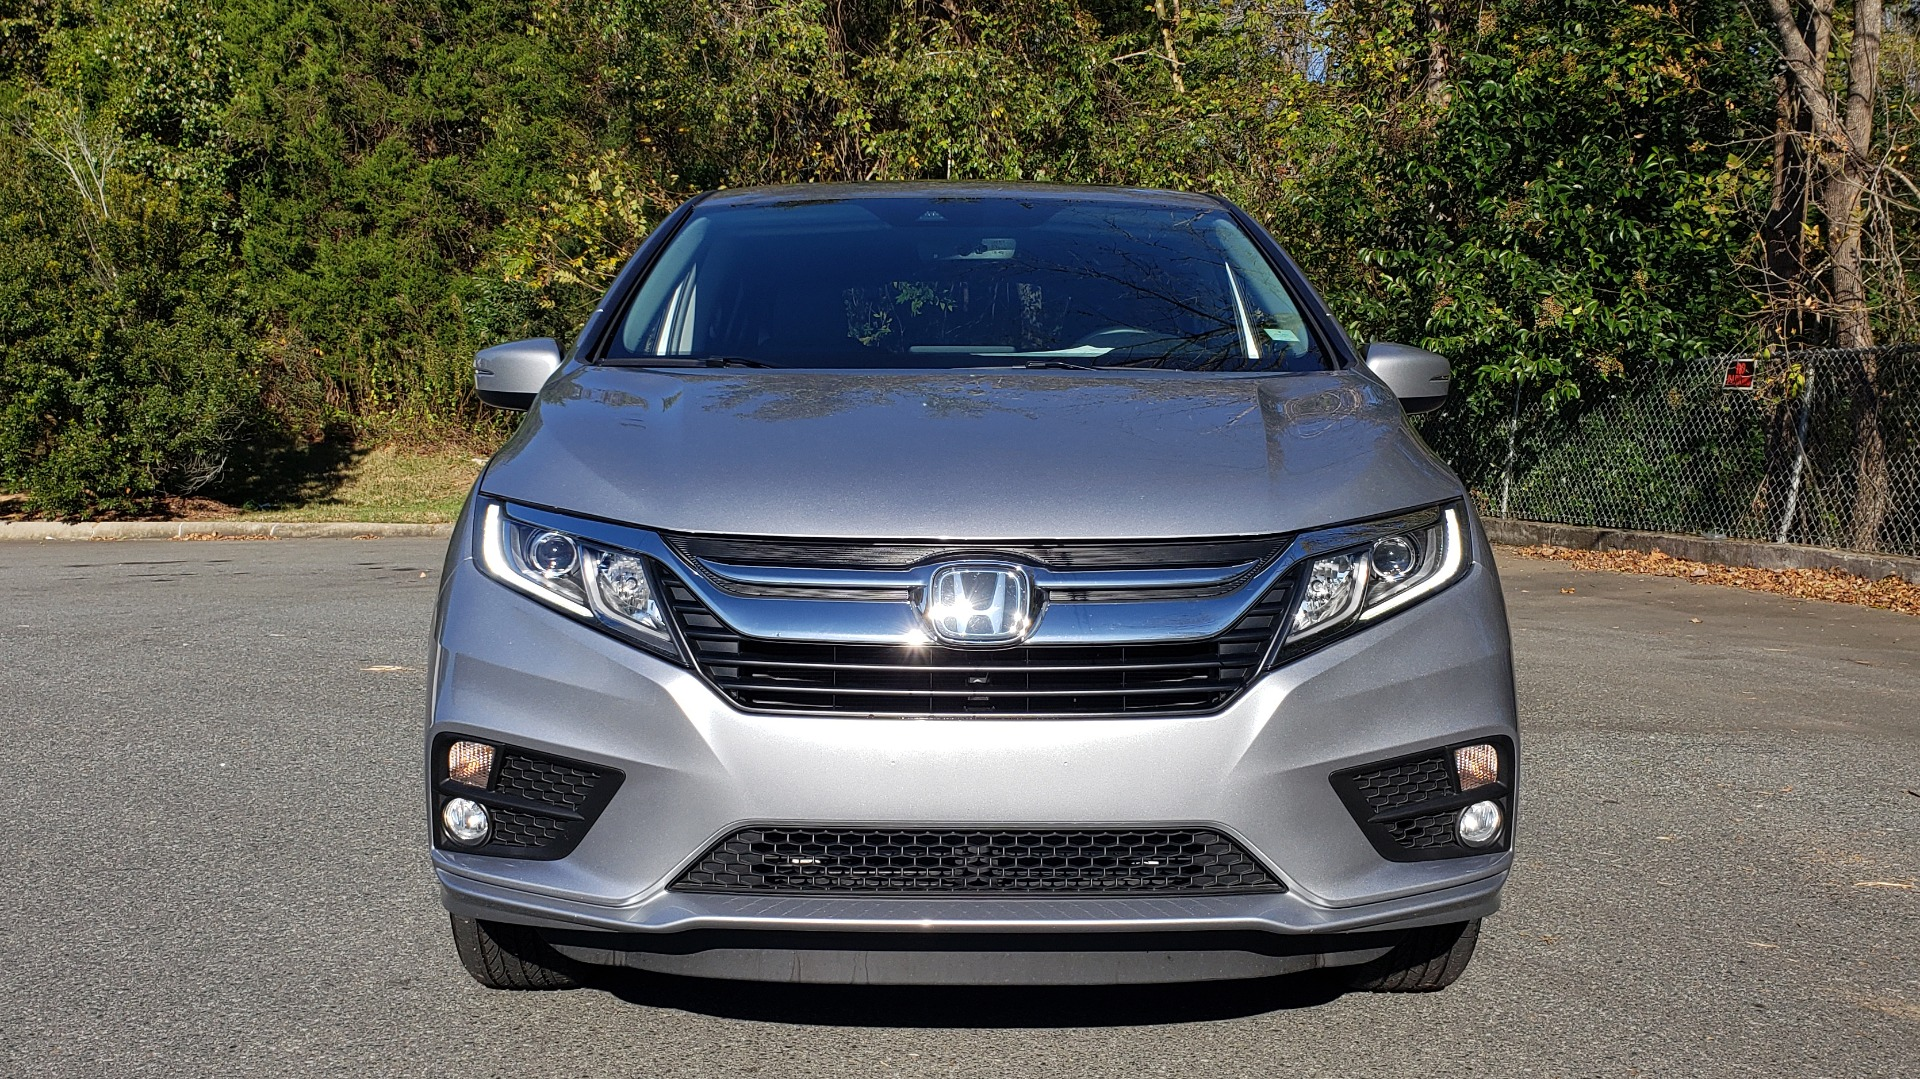 Used 2019 Honda ODYSSEY EX-L BRAUNABILITY / NAV / RES / LKA / BLUE-RAY / SUNROOF / REARVIEW for sale $49,999 at Formula Imports in Charlotte NC 28227 55